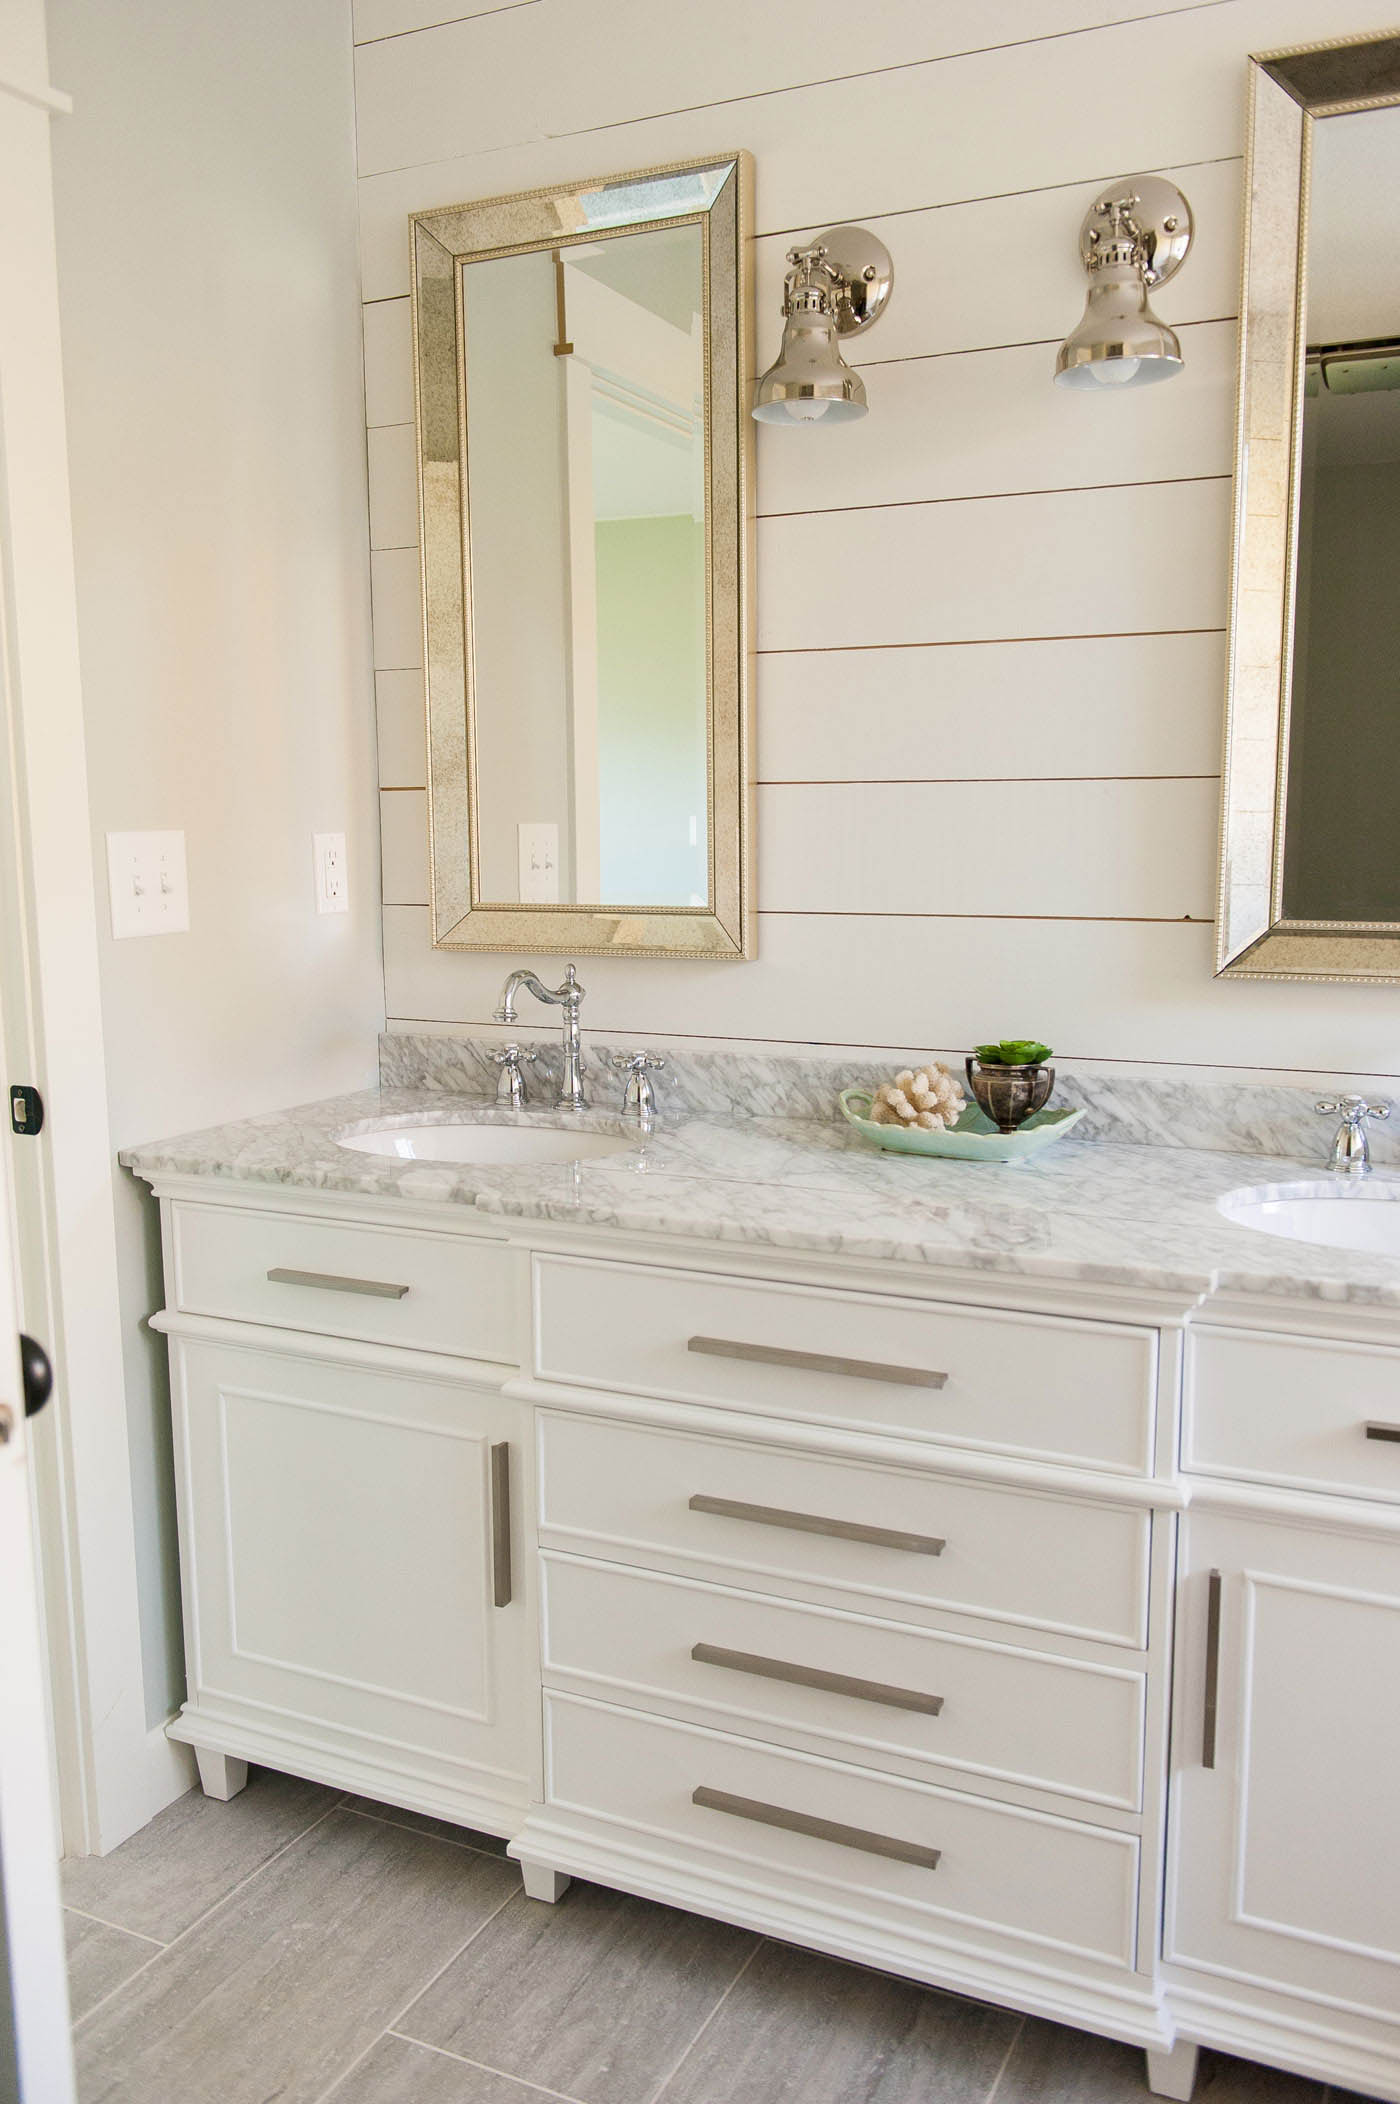 The Ultimate Guide To Buying A Bathroom Vanity The